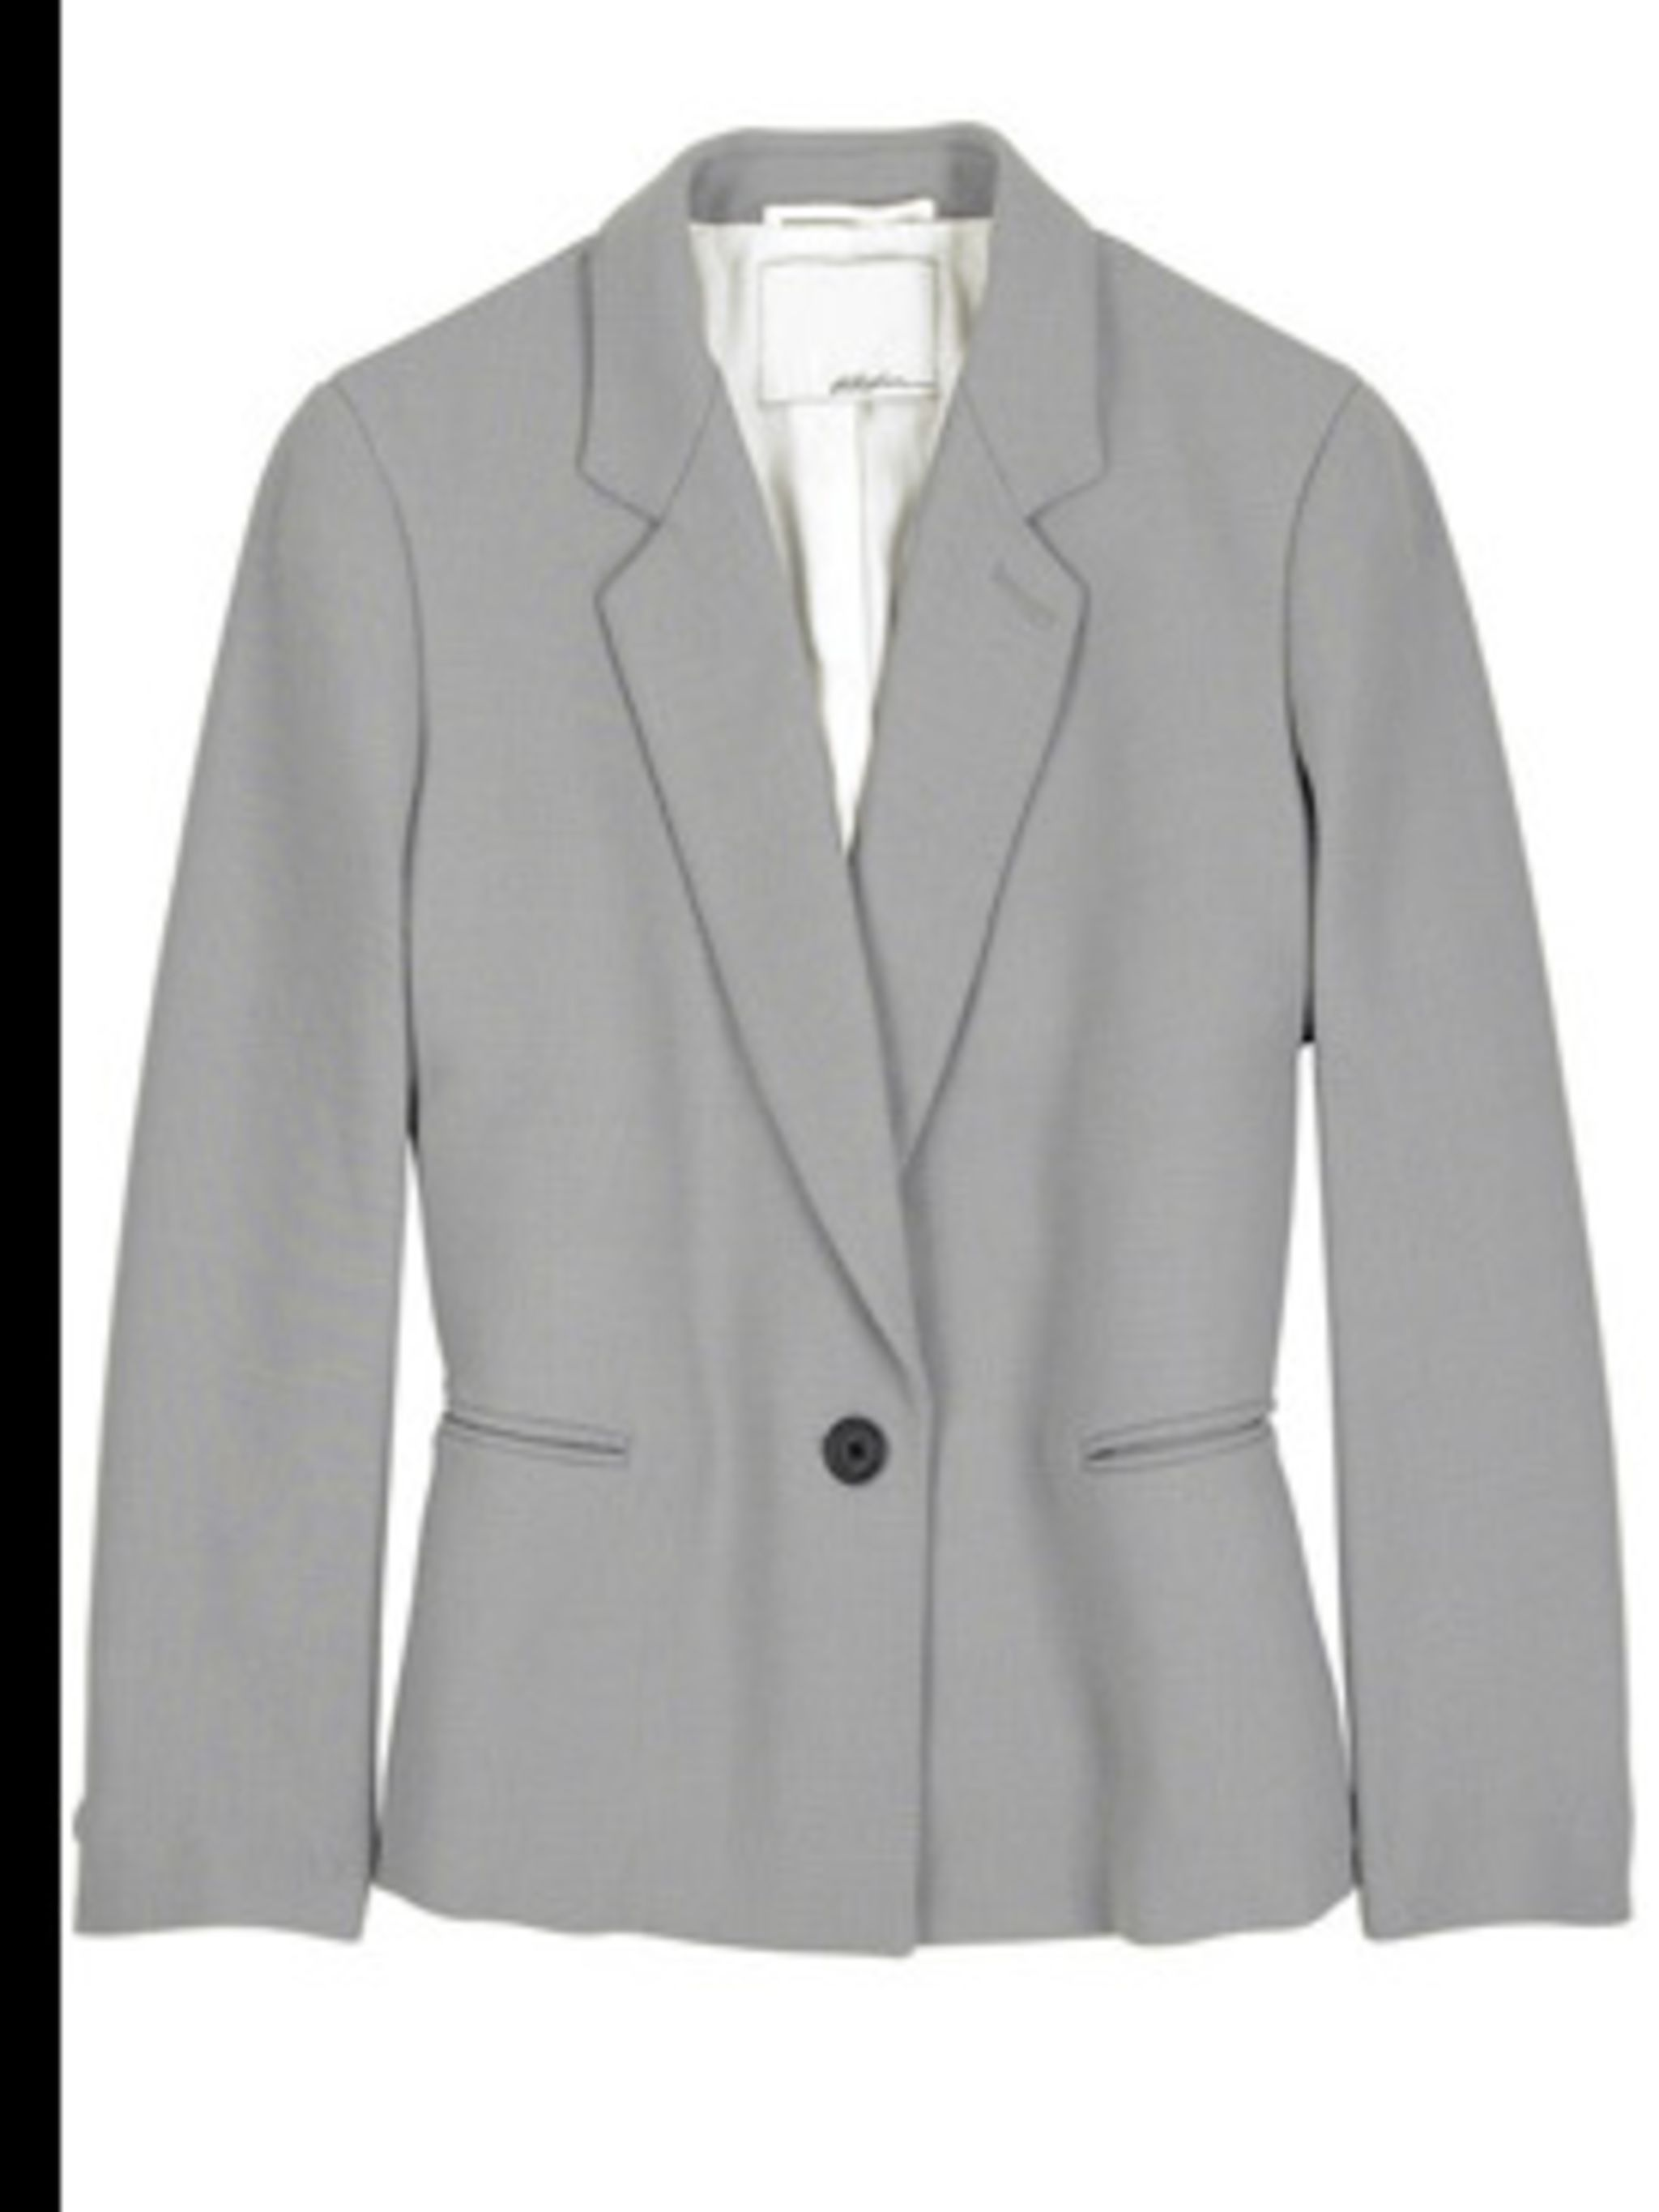 "<p>Blazer, £395.00 by 3.1 Phillip Lim at <a href=""http://www.net-a-porter.com/product/34695"">Net-a-Porter</a></p>"